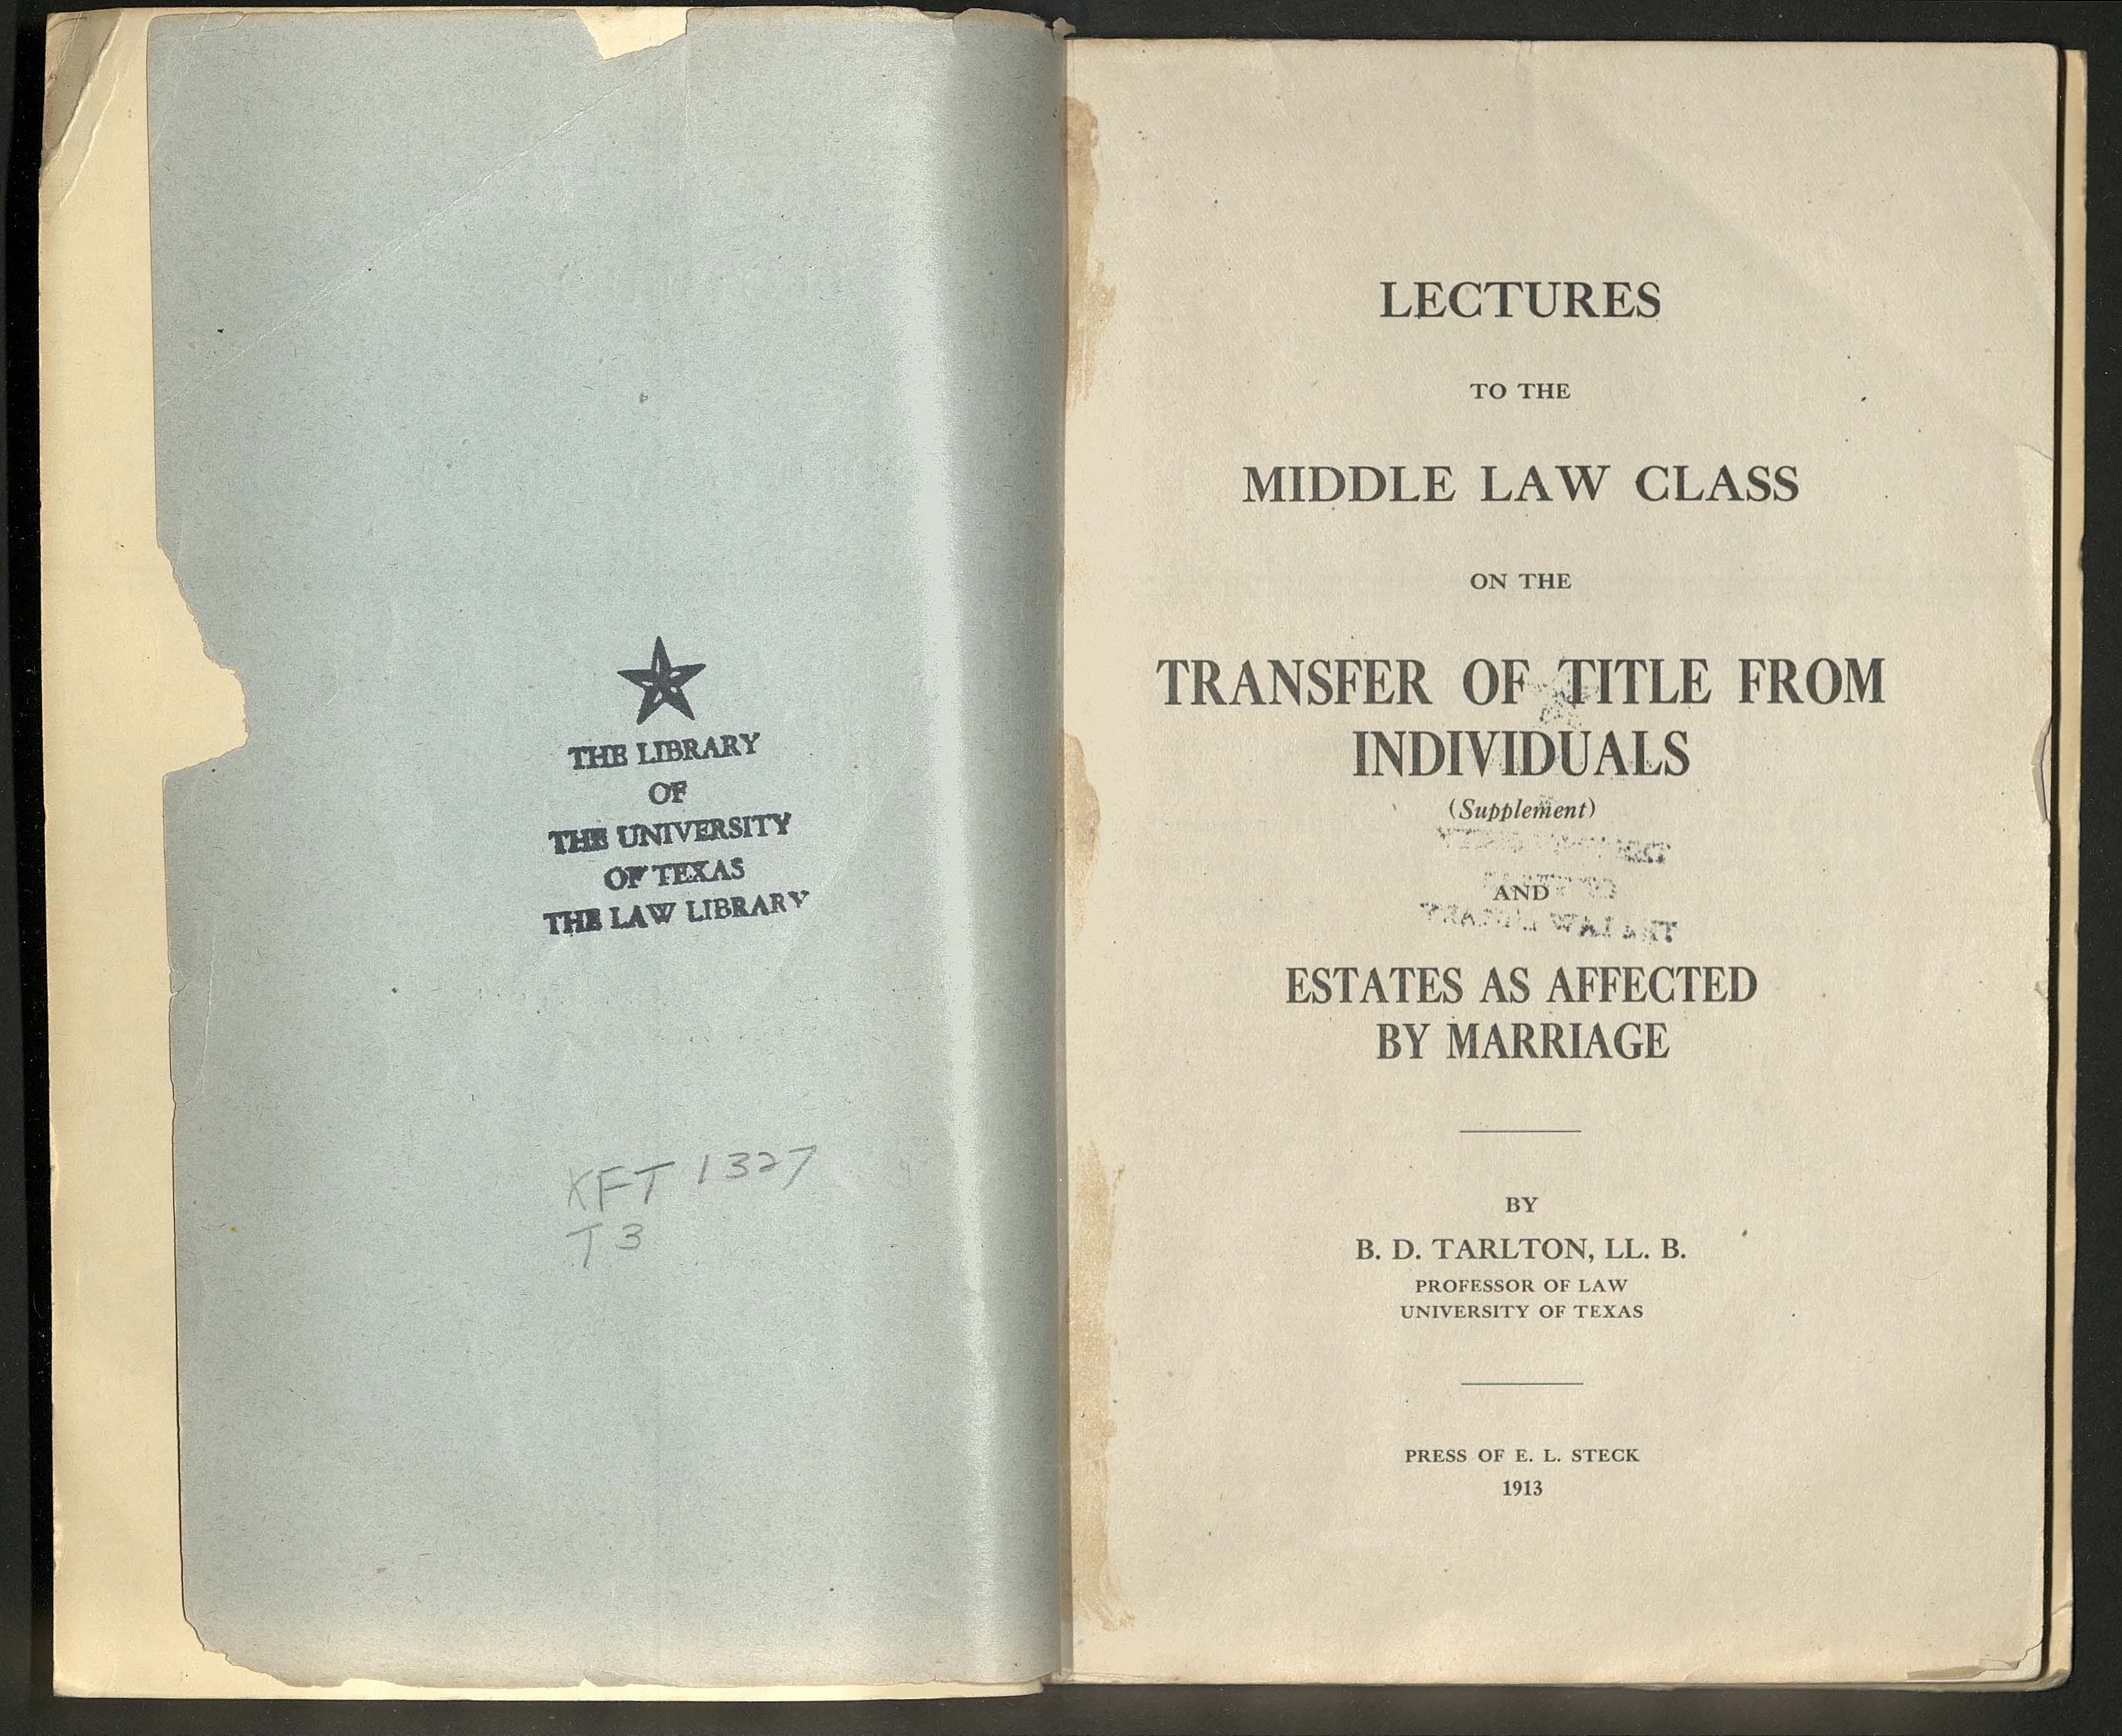 Lectures to the Middle Law Class title page